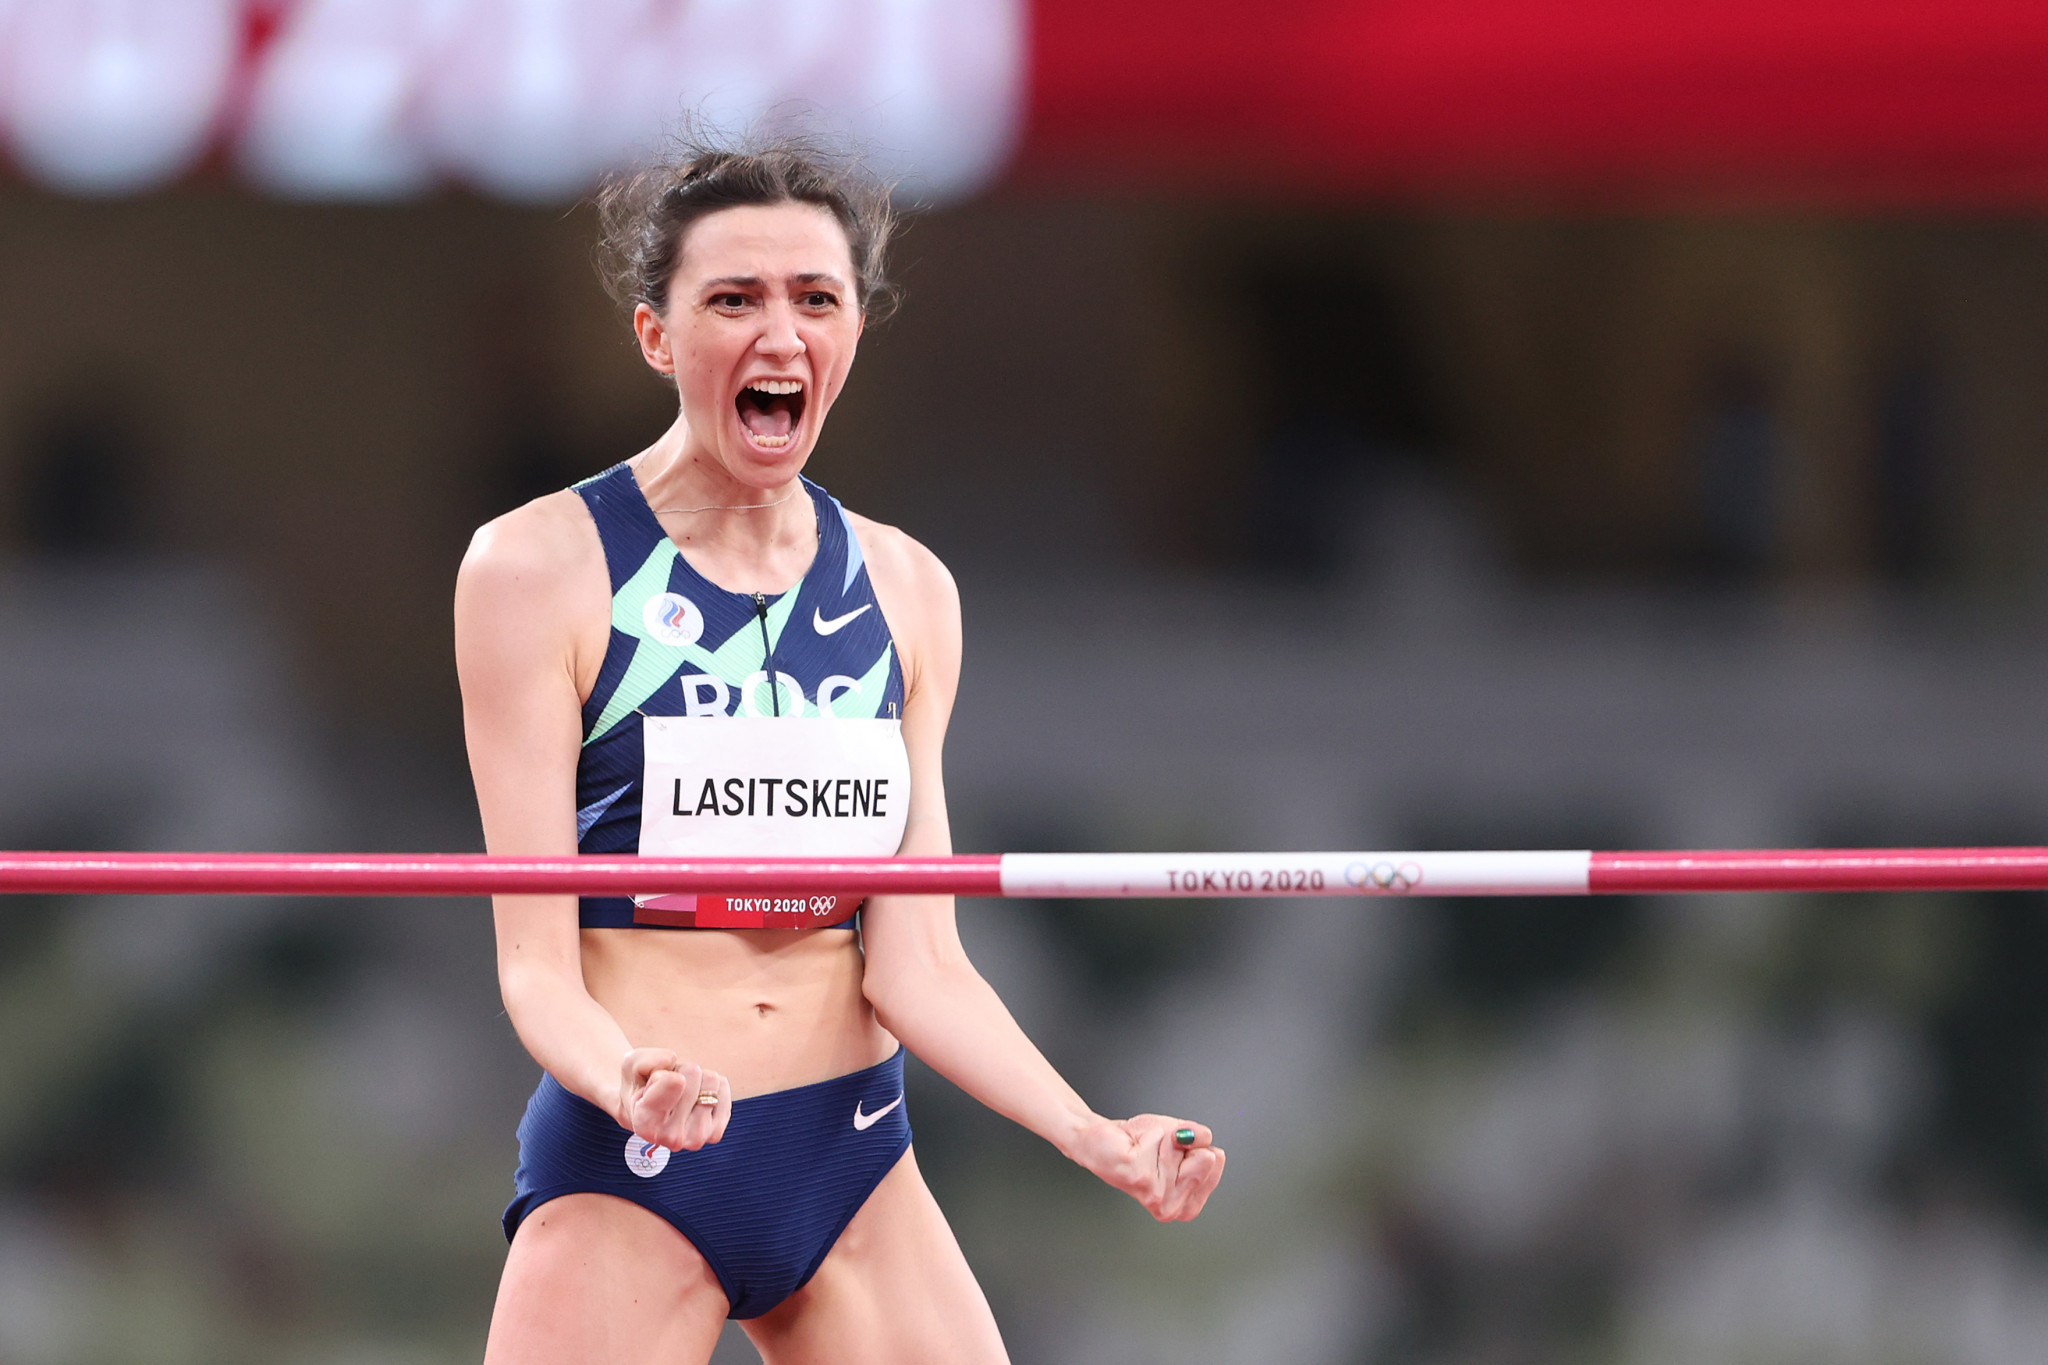 Mariya Lasitskene made up for her Rio 2016 absence with high jump gold at the Tokyo 2020 Olympics ©Getty Images